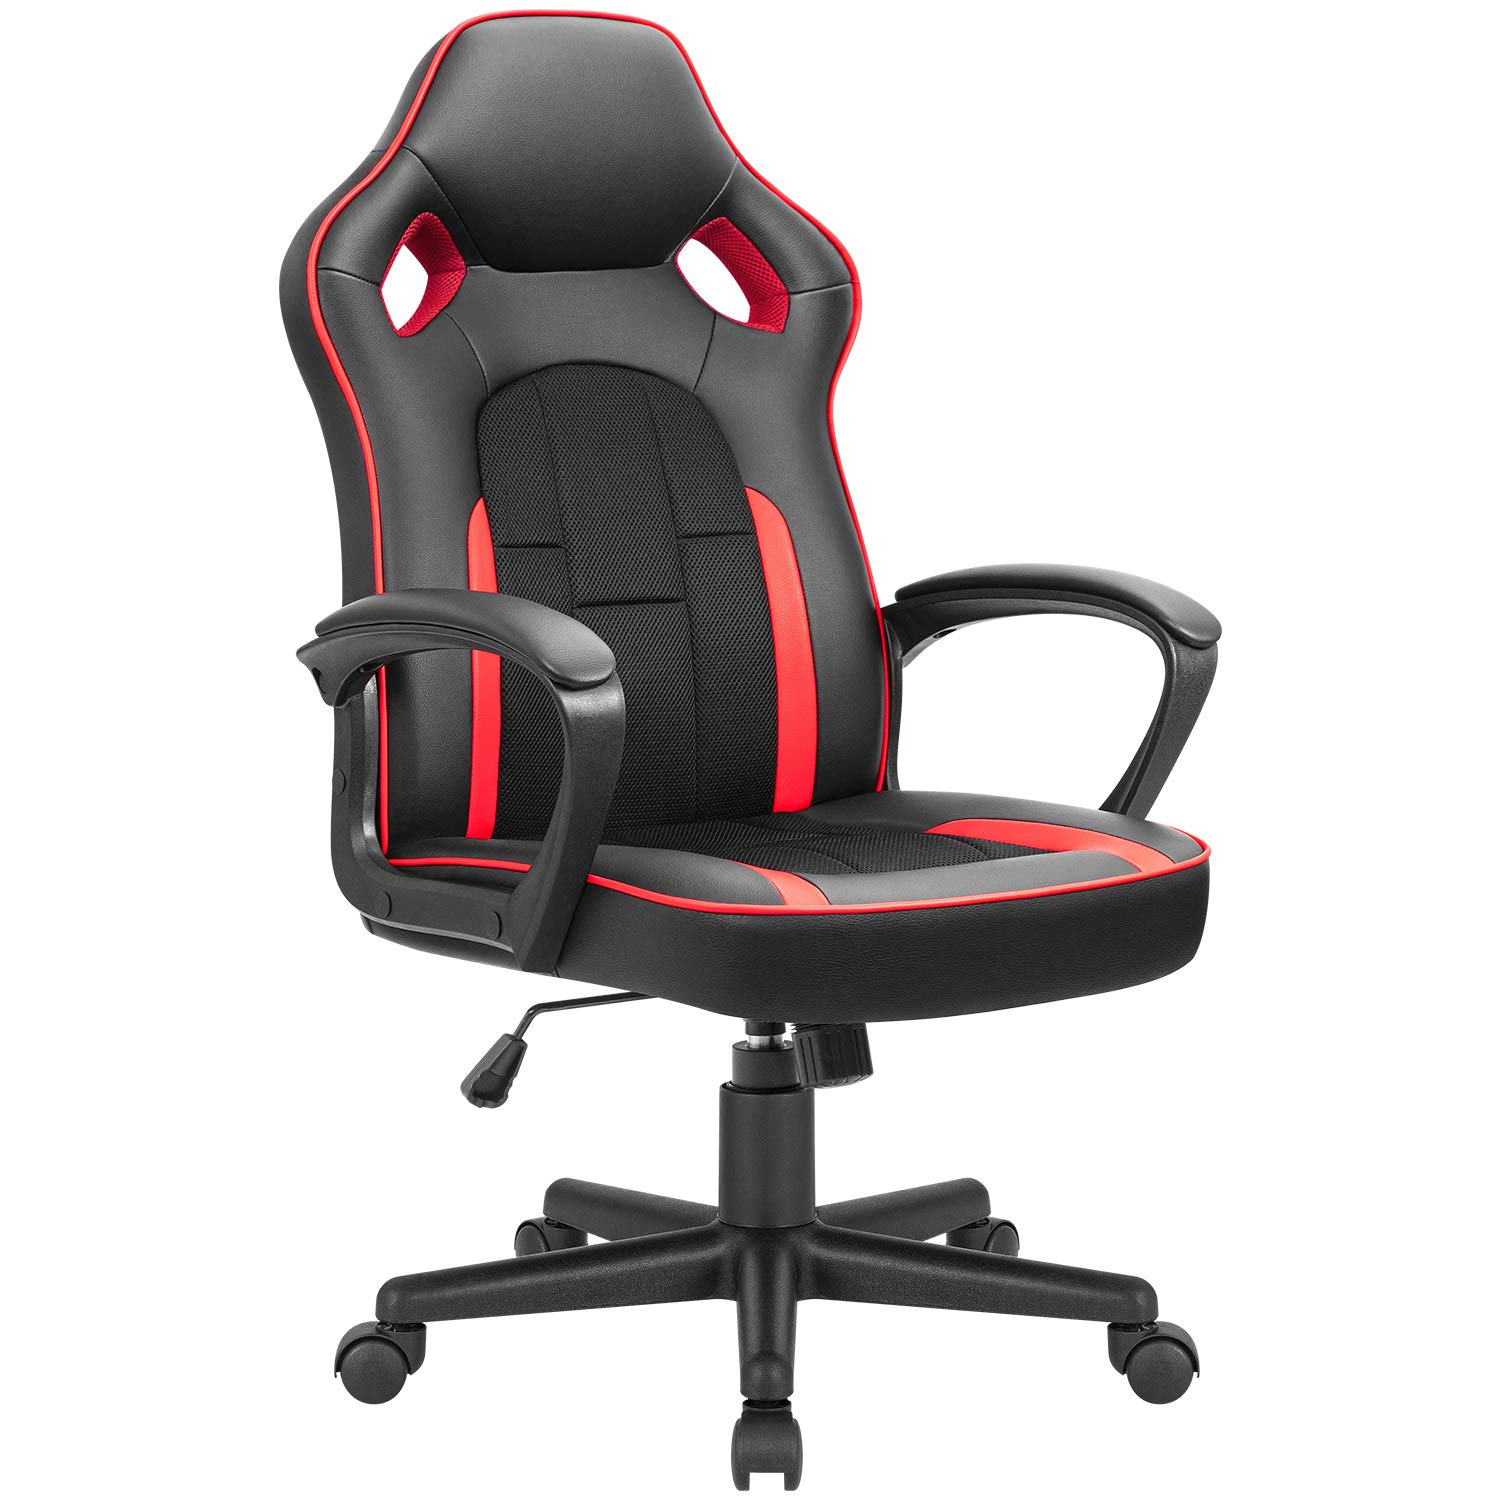 JUMMICO Gaming Chair Ergonomic Executive Office Desk Chair High Back Leather Swivel Computer Racing Chair with Lumbar Support (Red) by JUMMICO